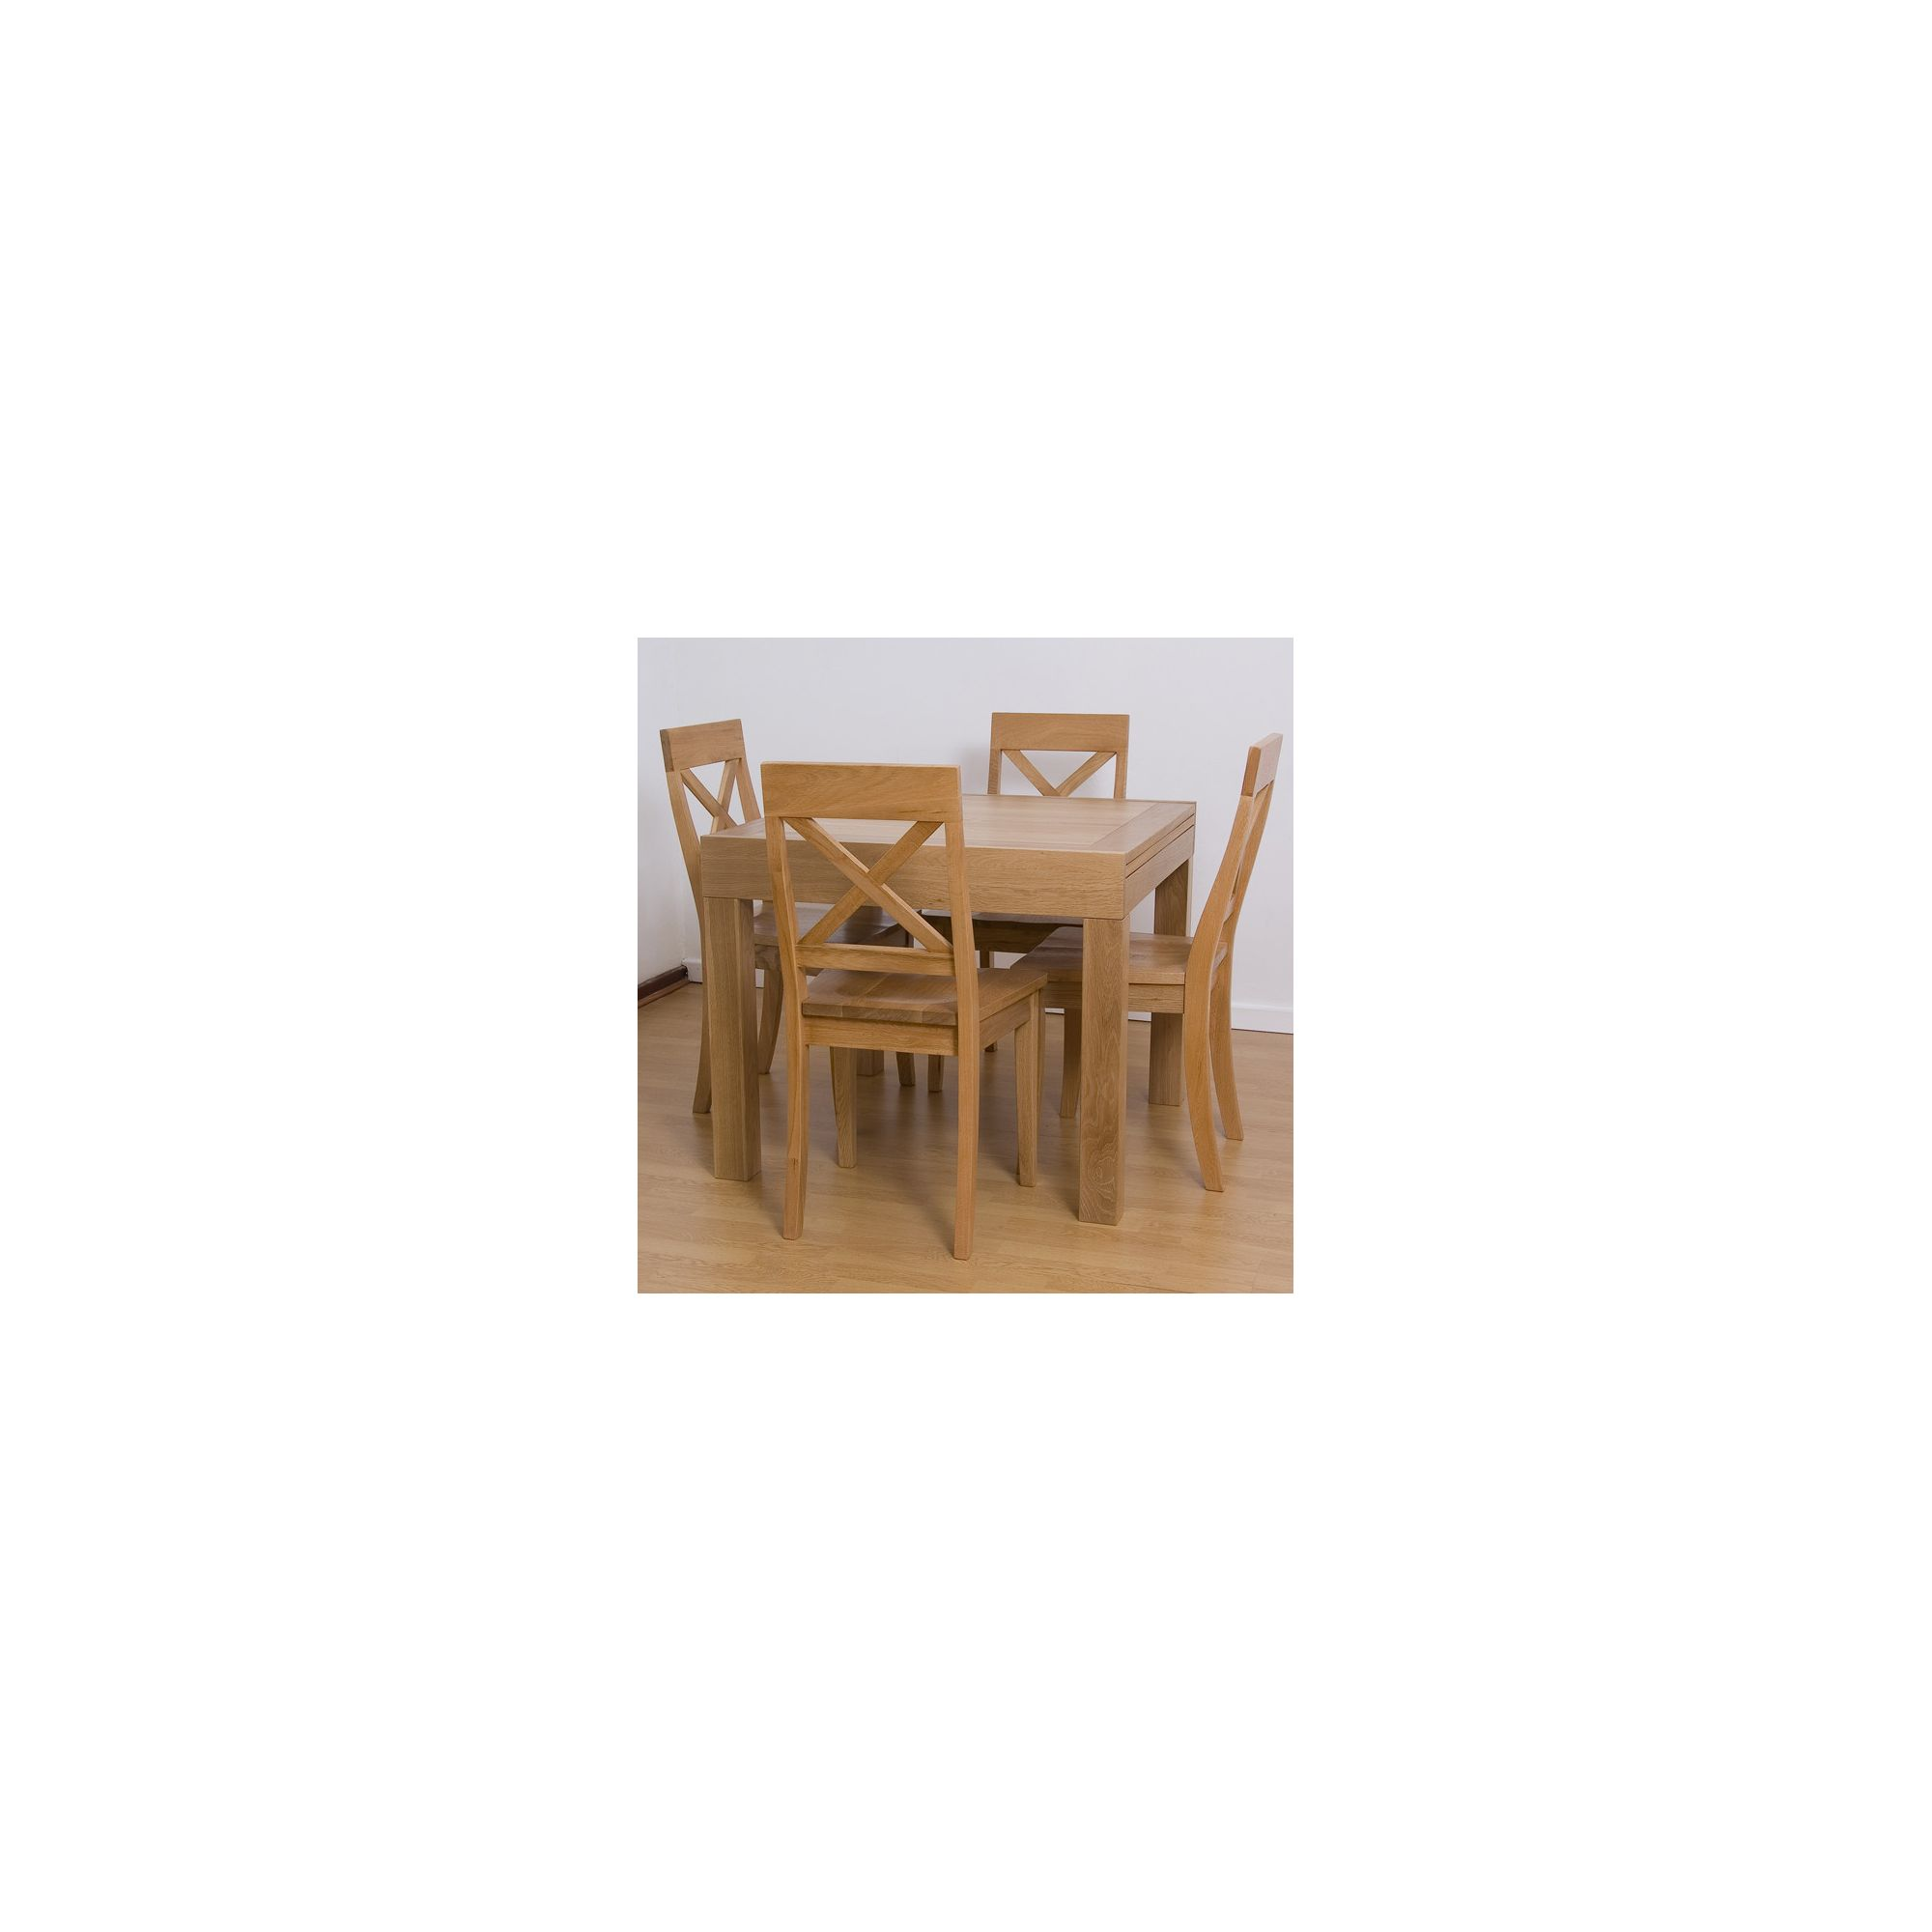 G&P Furniture 5 Piece Square Extending Dining Set at Tesco Direct